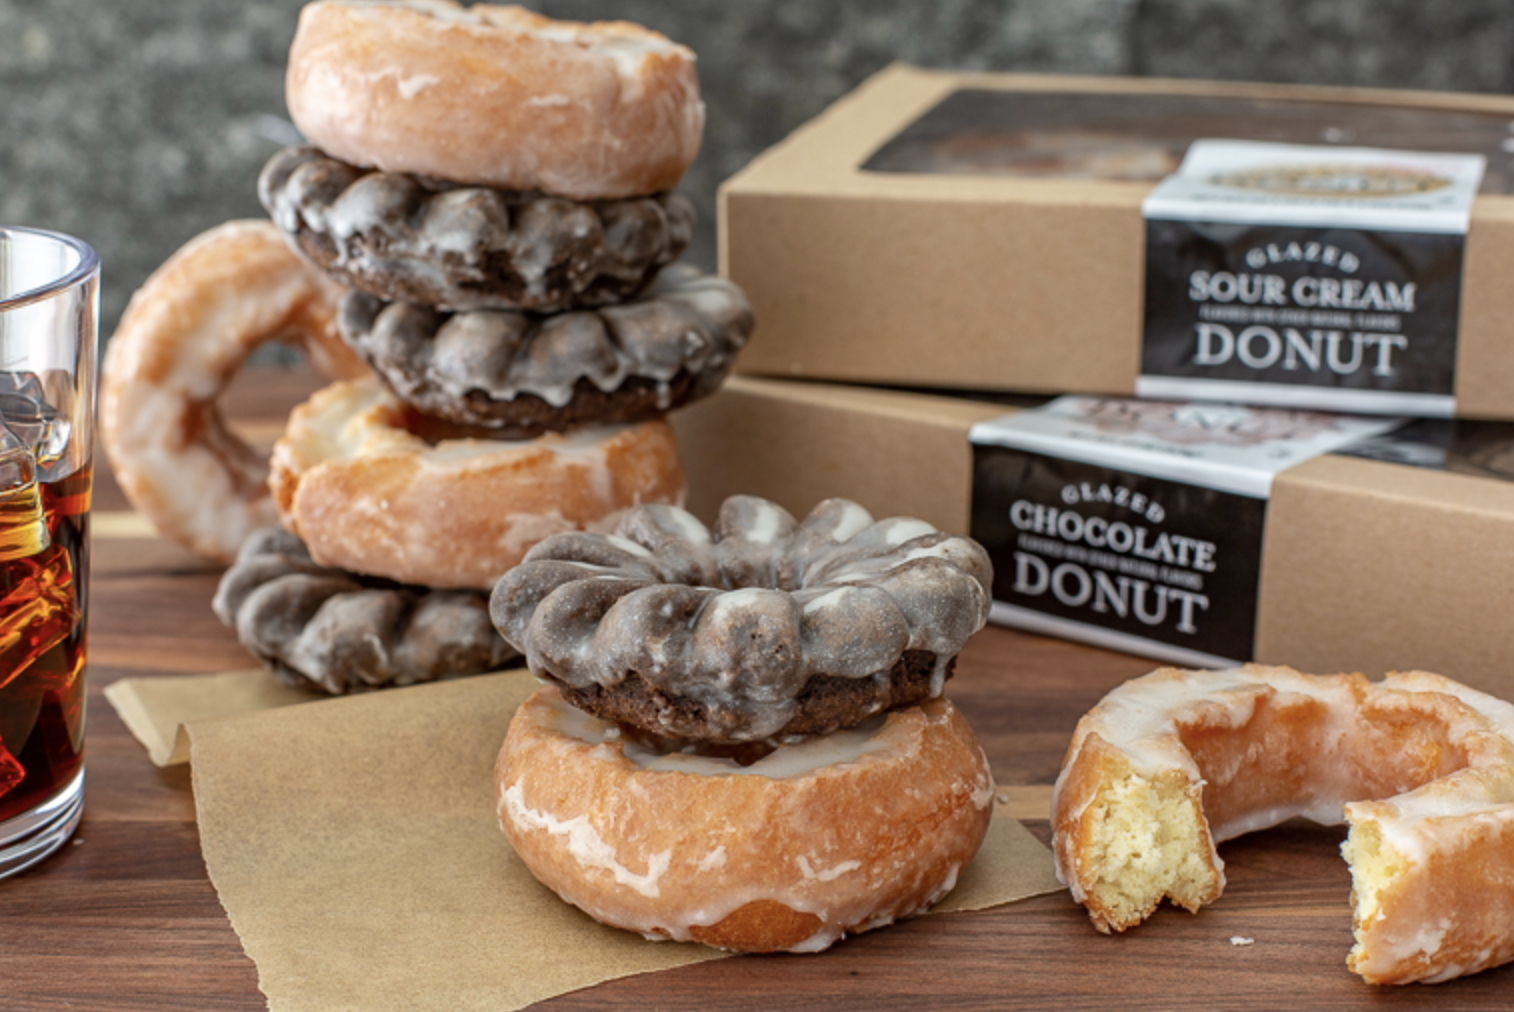 Trader Joe's Is Now Selling Donuts All Year Long, so You Don't Need to Wait in Line at the Coffee Shop